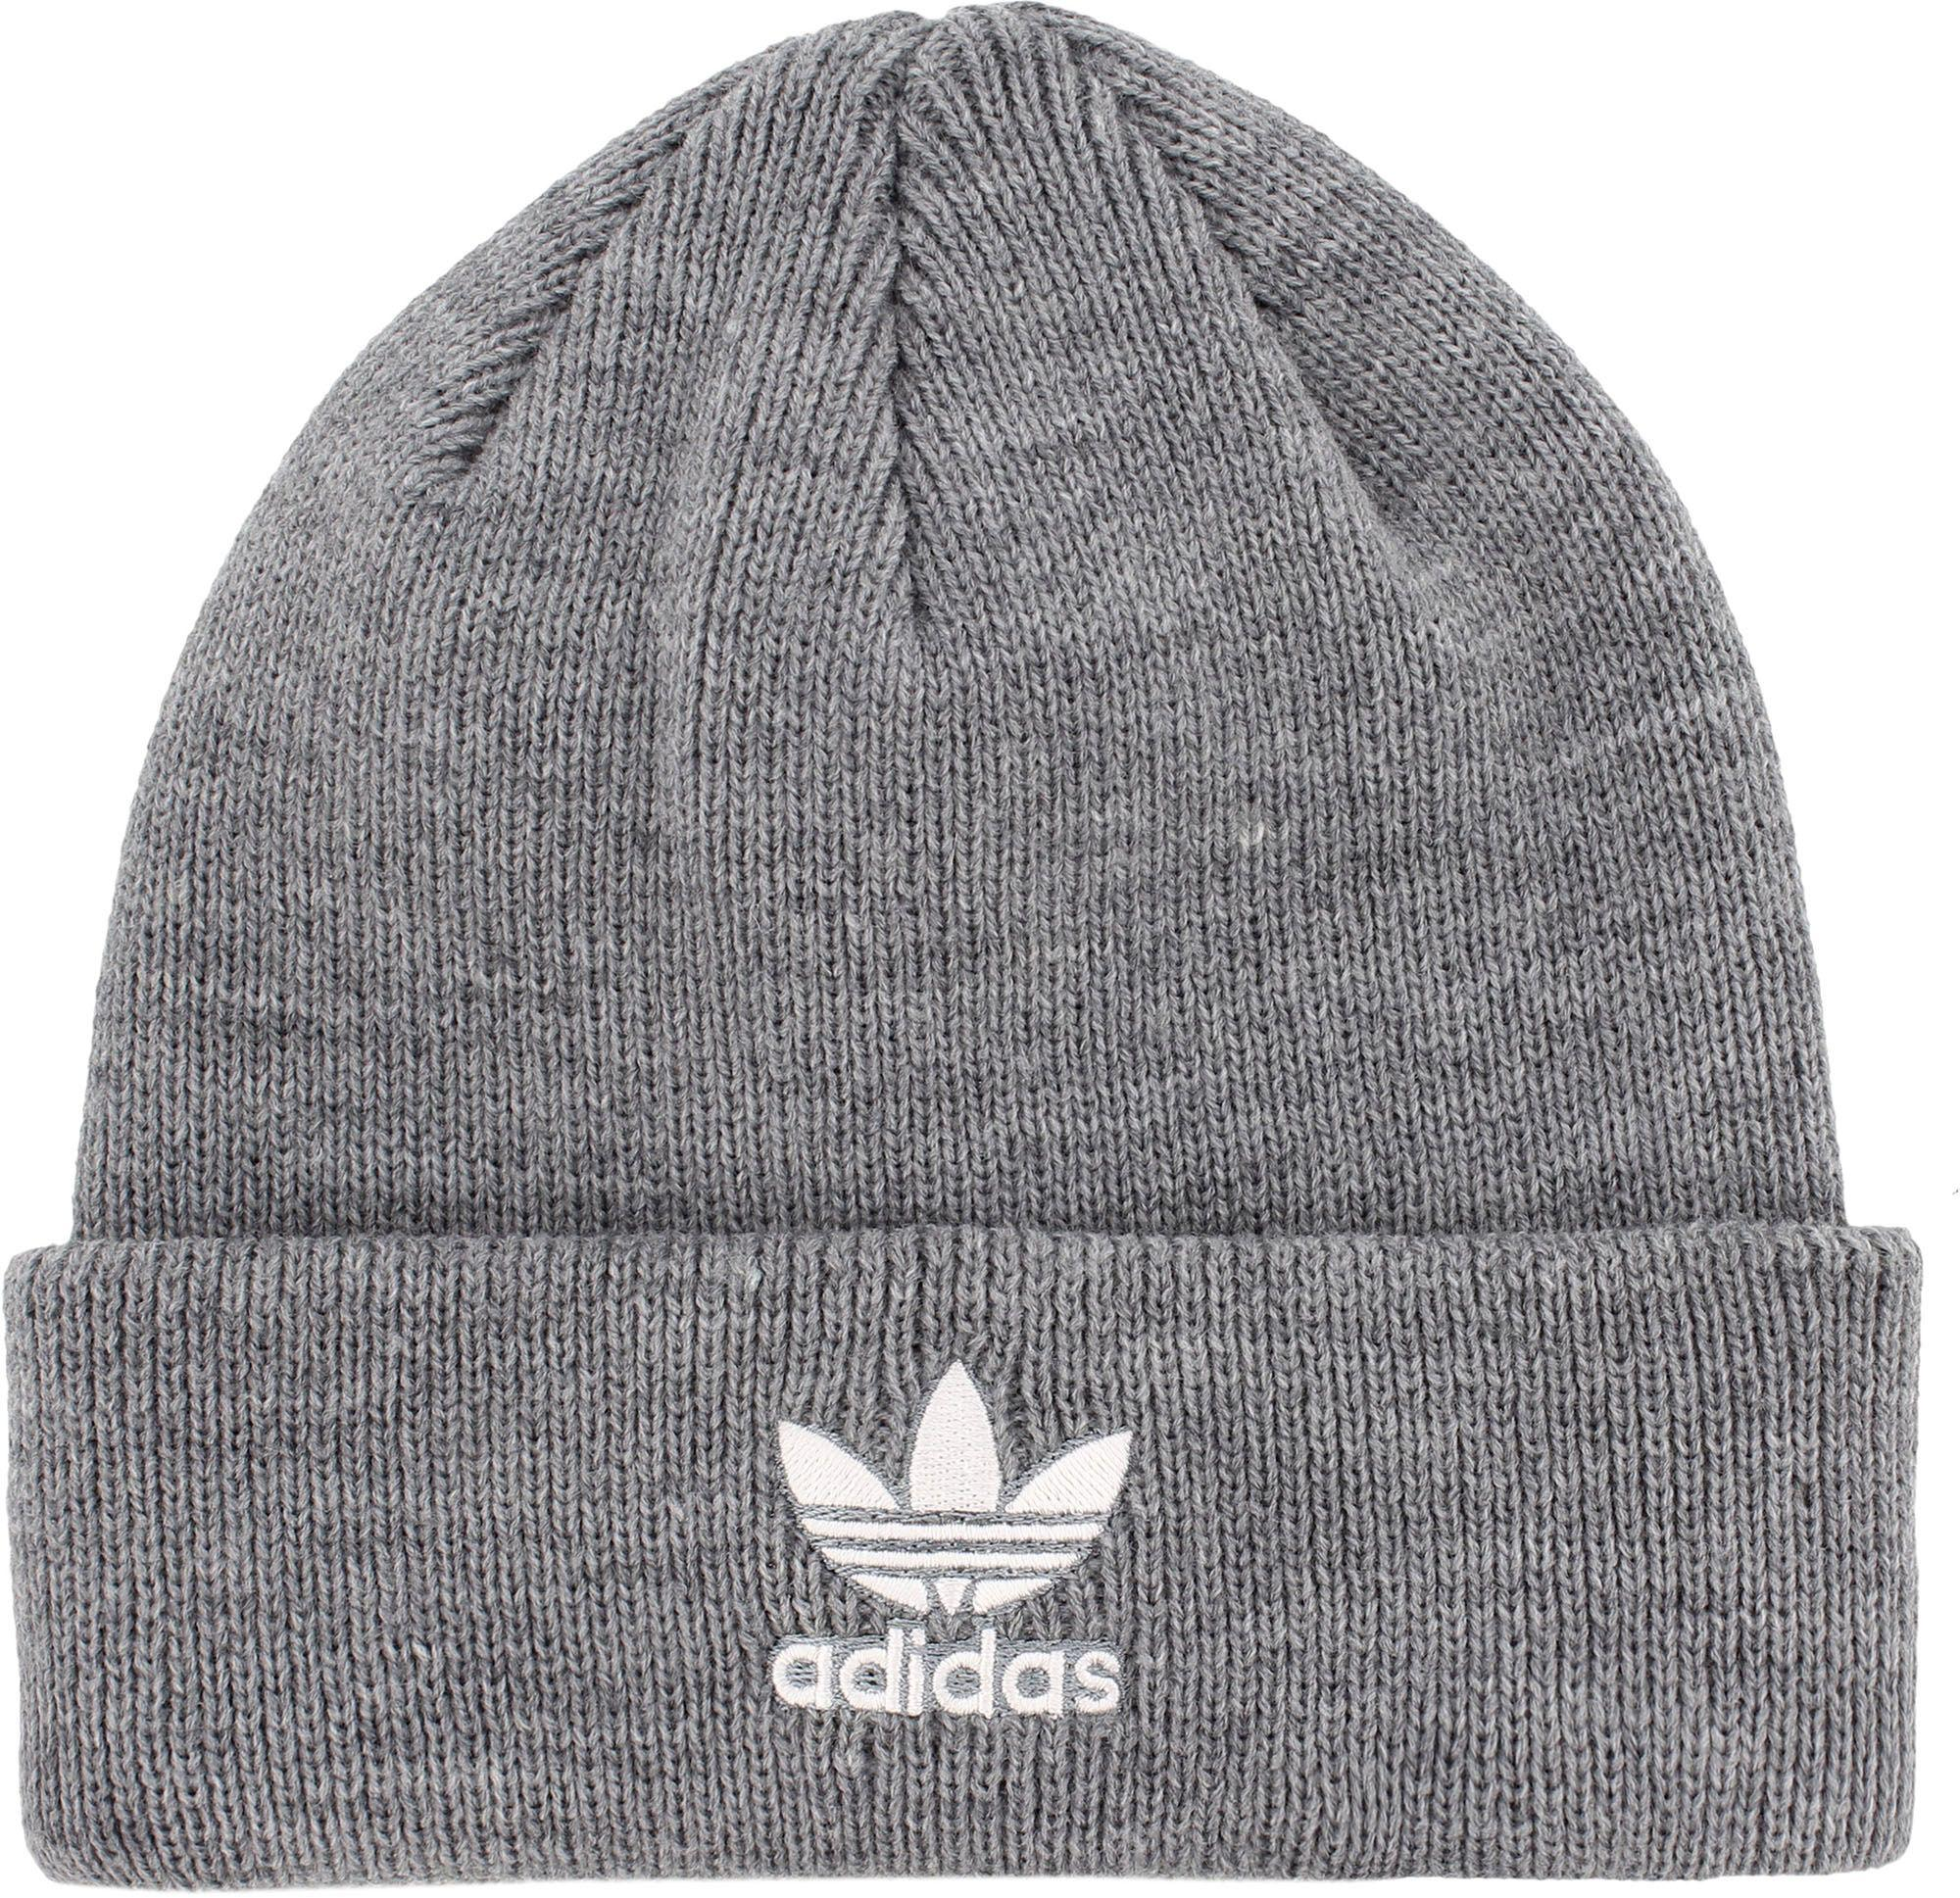 5f9dec46f970a Adidas - Gray Originals Youth Trefoil Beanie for Men - Lyst. View fullscreen